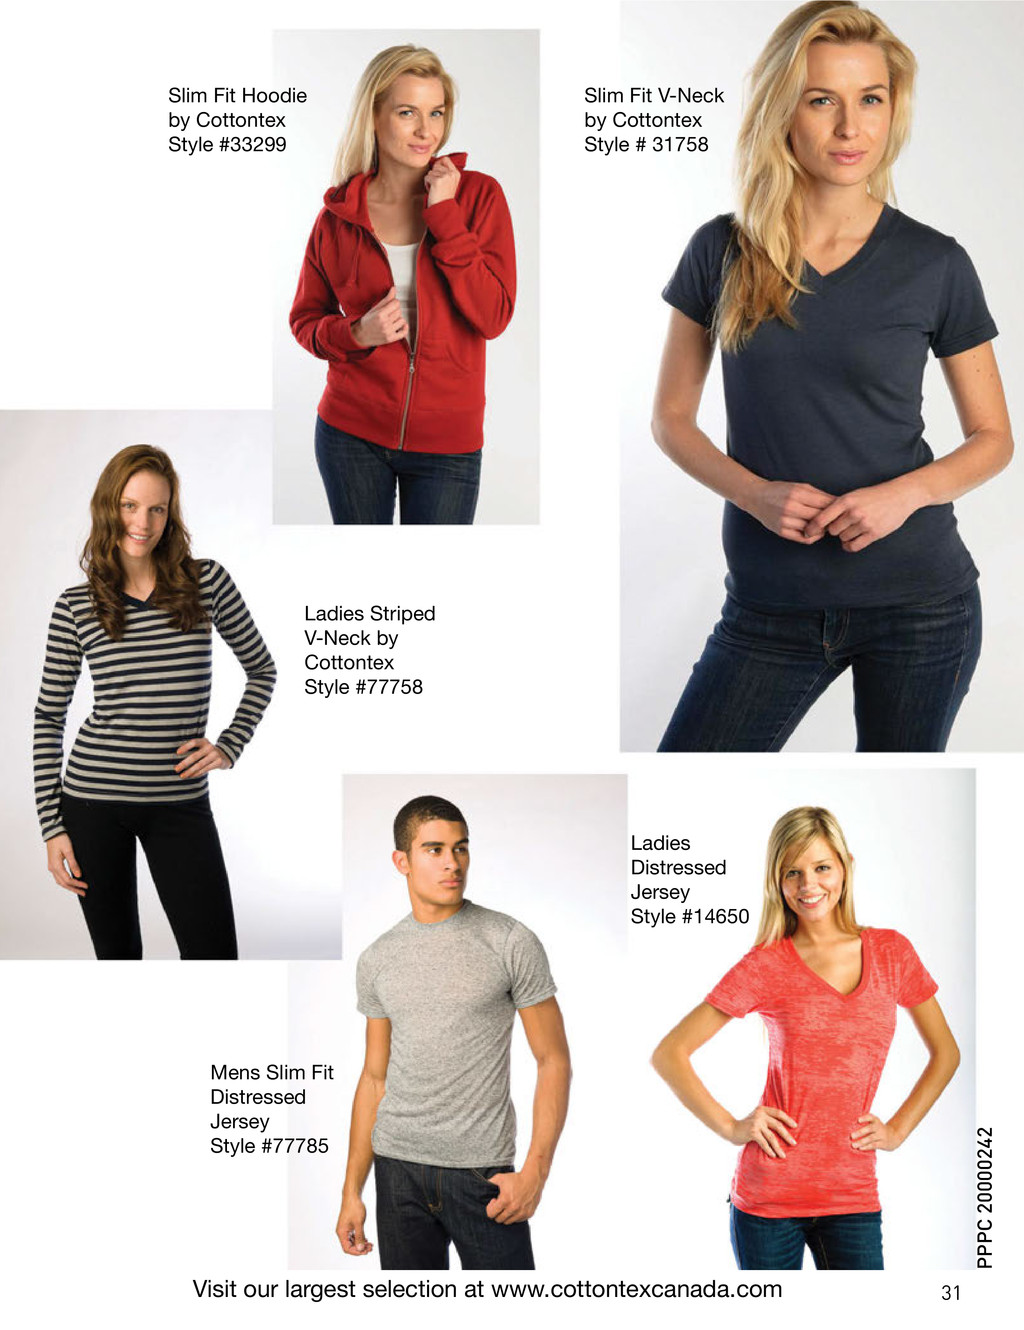 Visit our largest selection at www.cottontexcan...